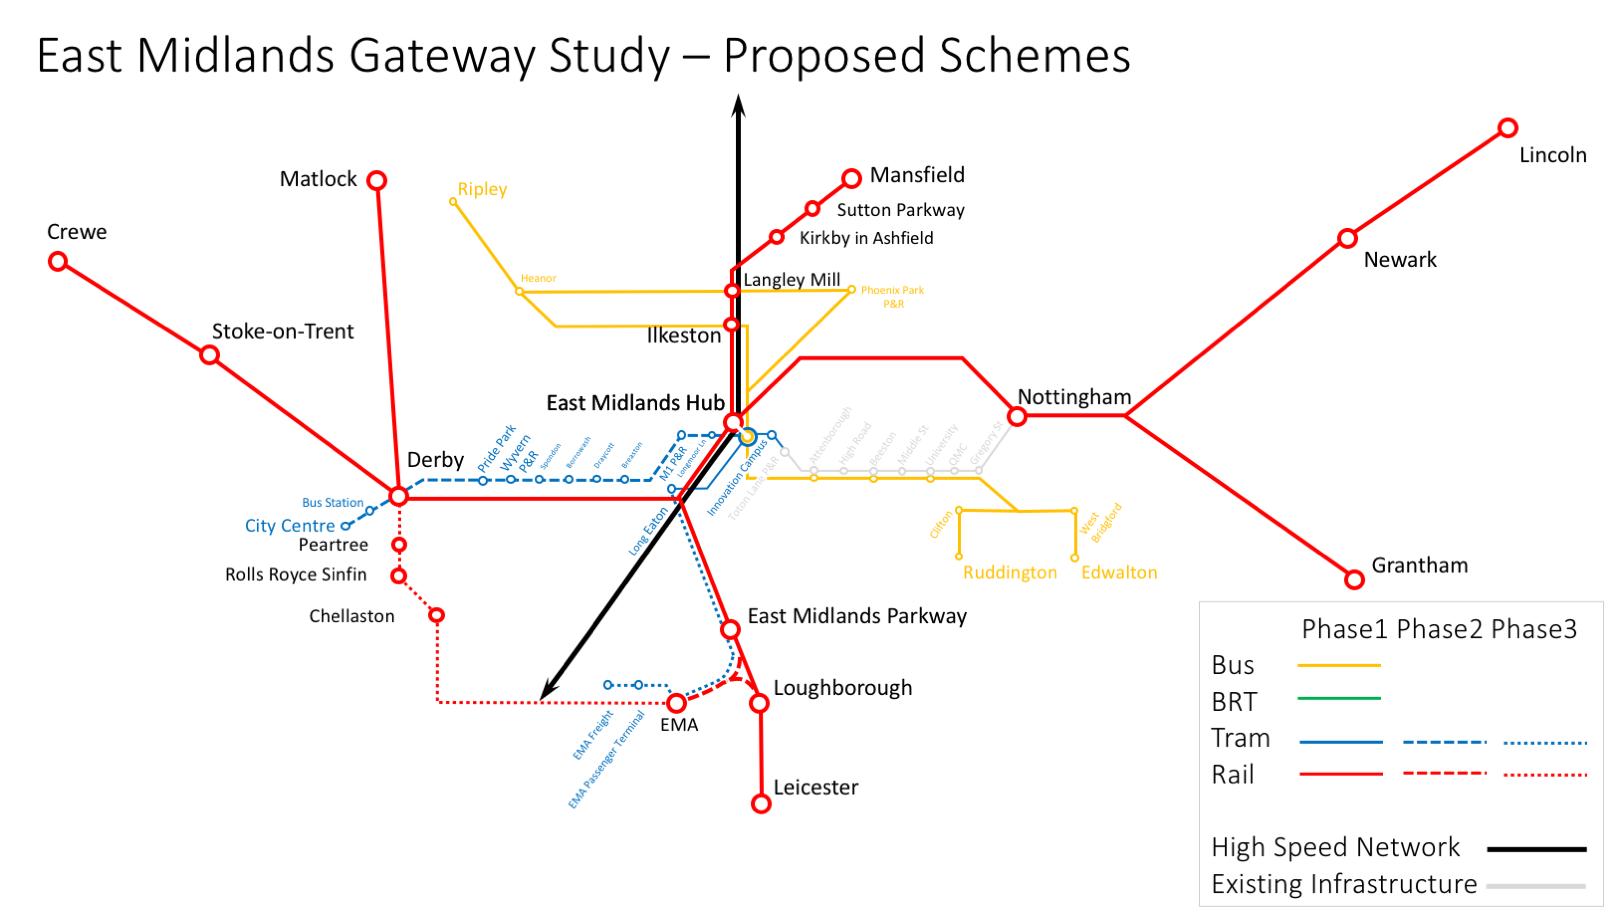 East Midlands Gateway Connectivity Study